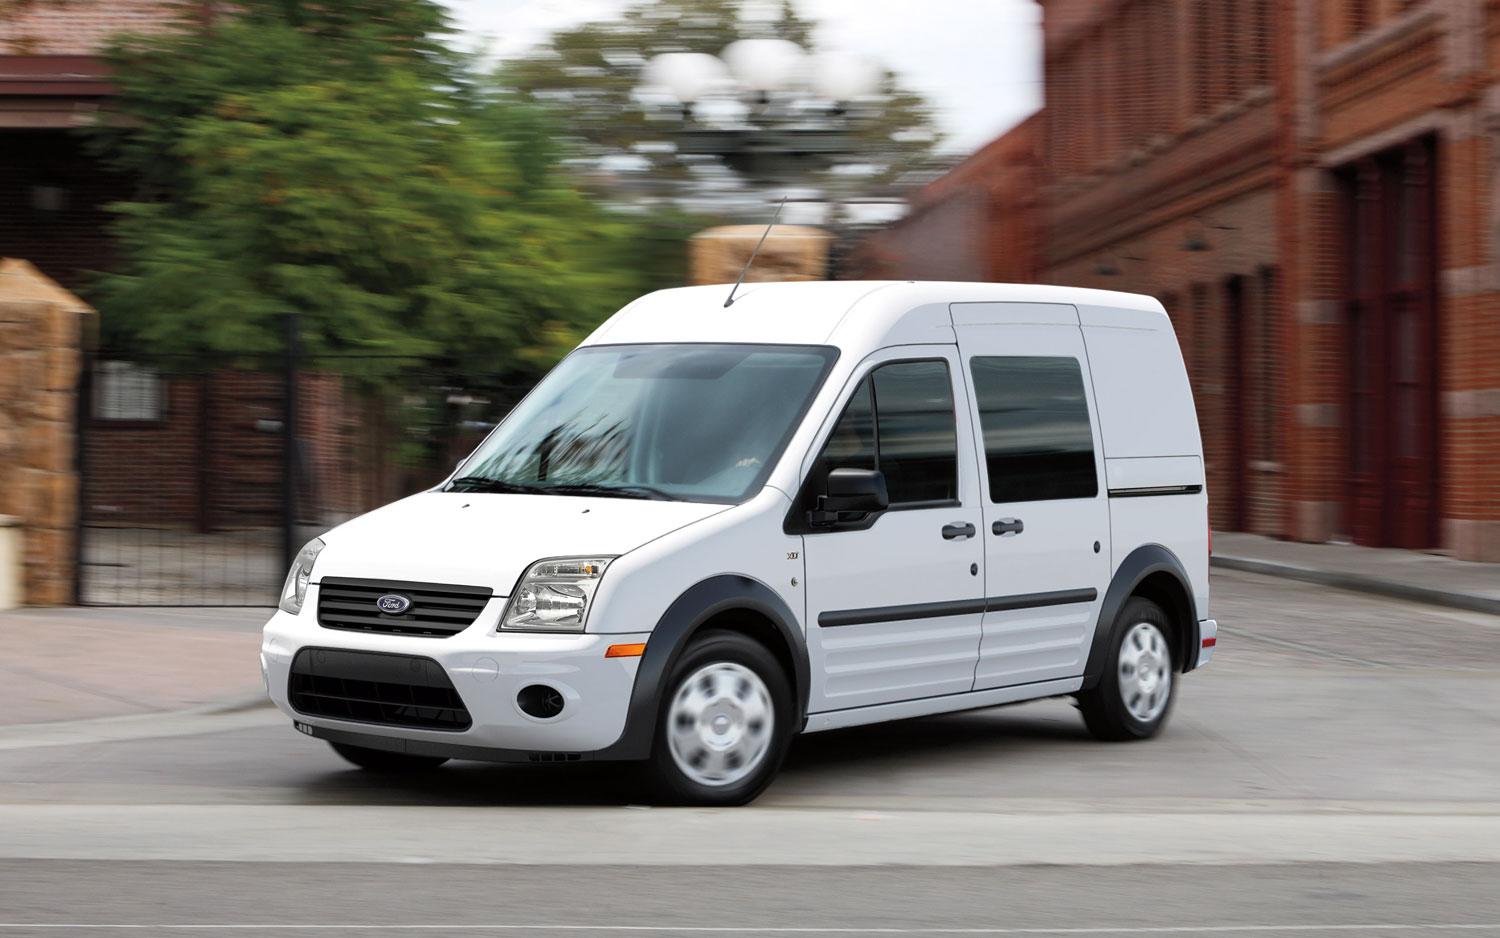 Build it Your Way: Ford Transit Connect - 6-Speed, Diesel, EcoBoost, 3-Rows?